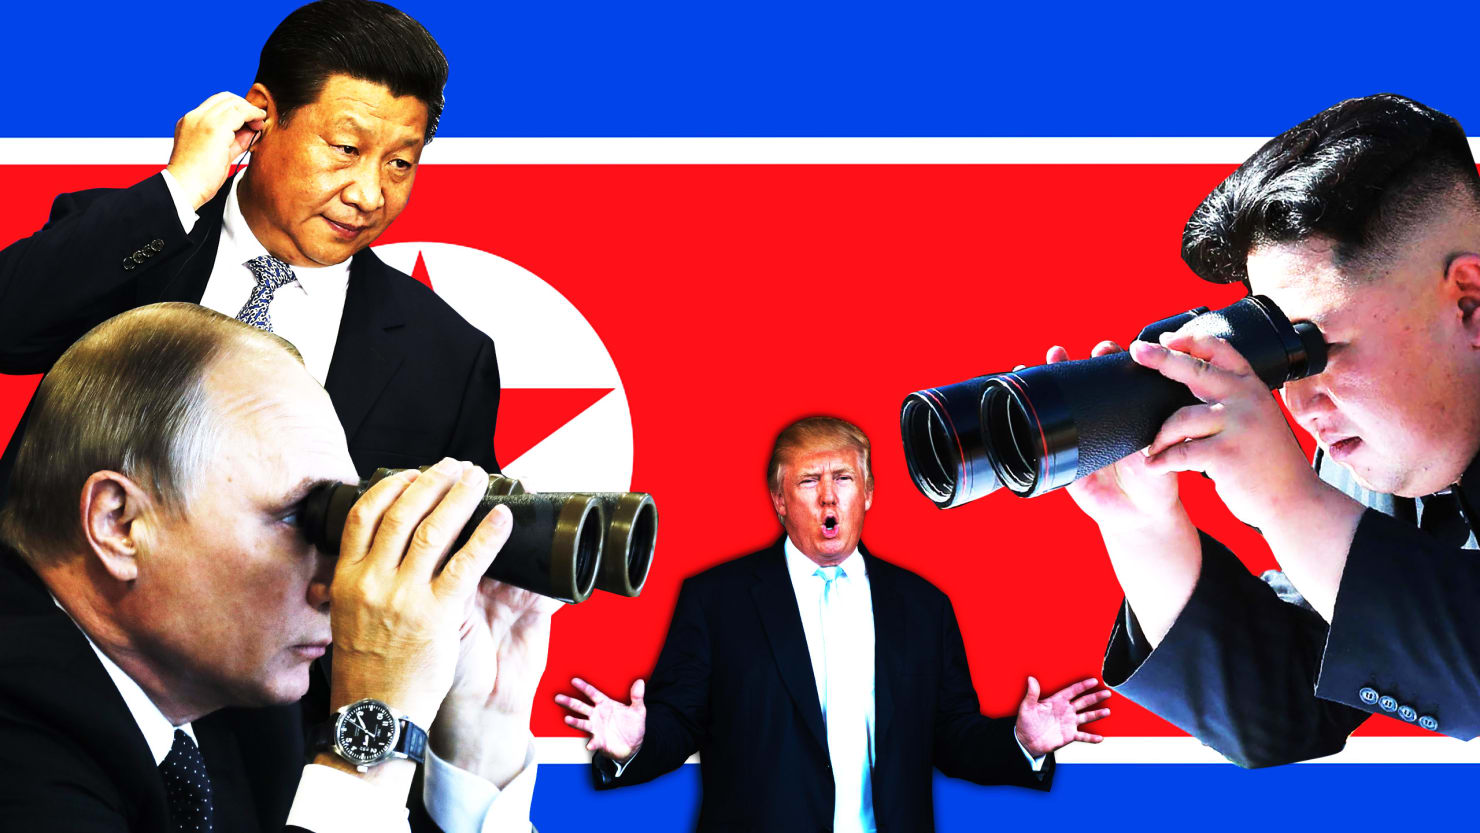 china and russia China and russia will resolutely support each other if cornered of the two, china is far more important to the united states' long-term prosperity a new cold war with china is in nobody's .